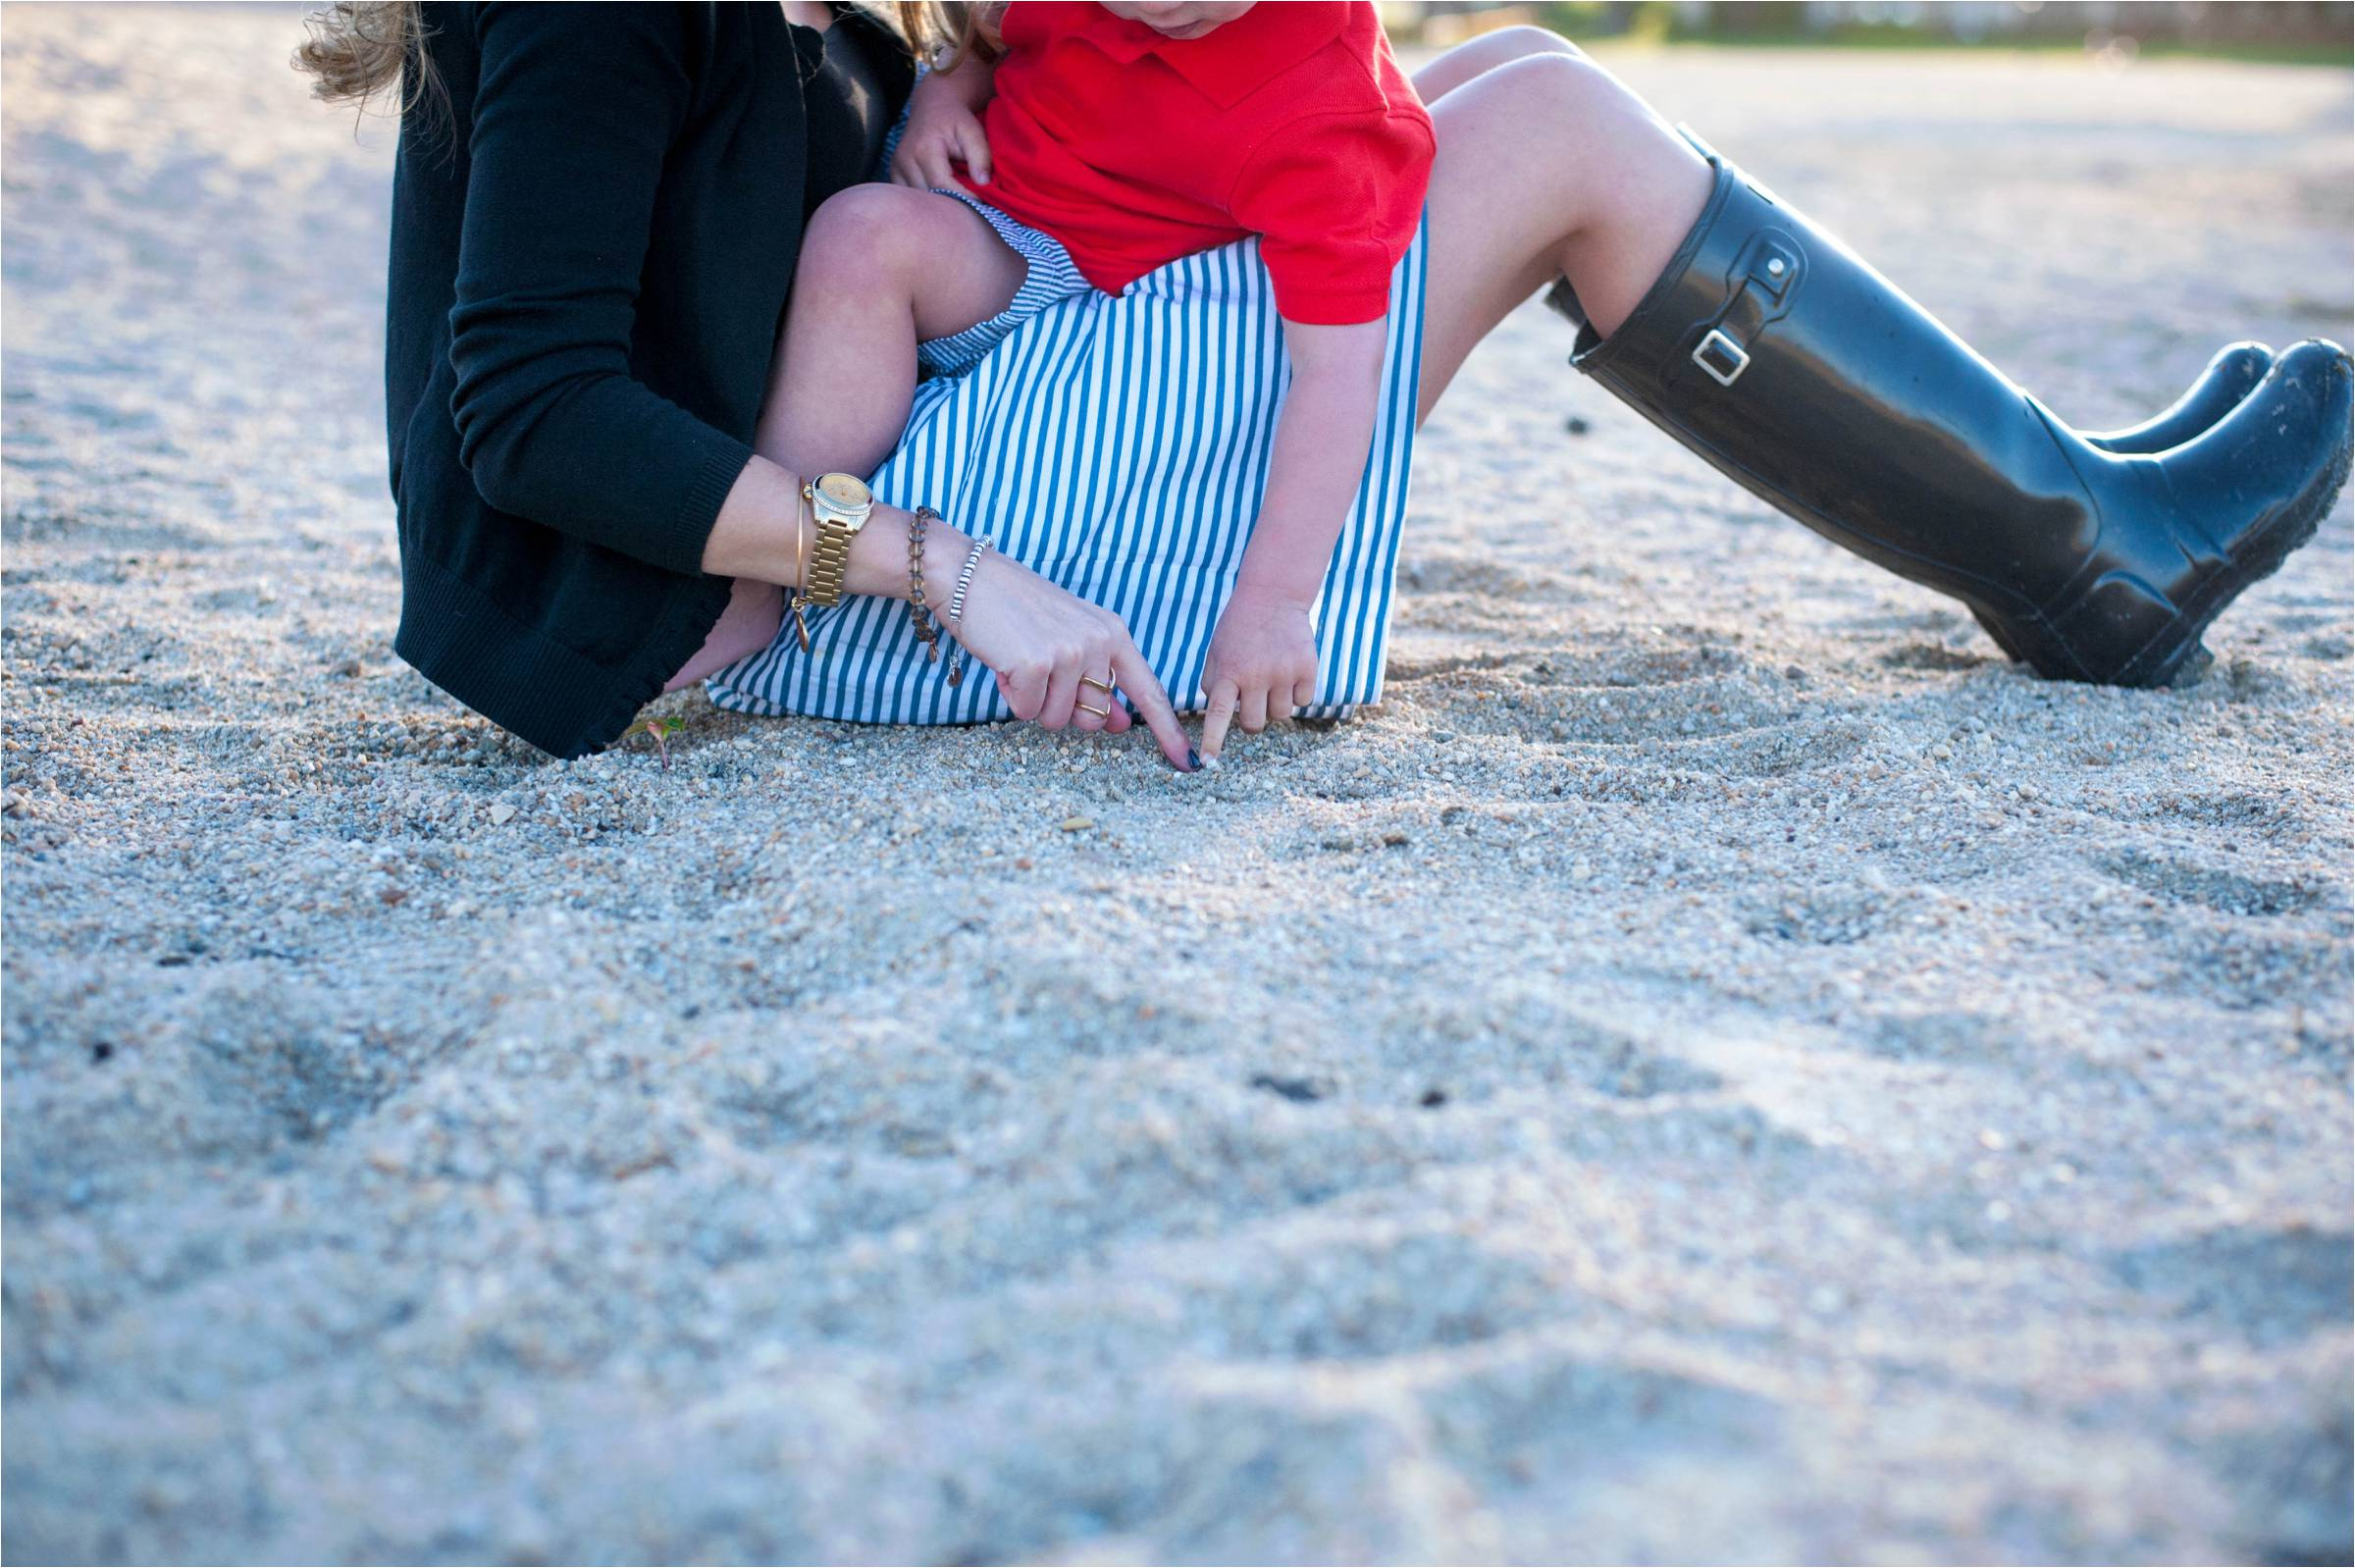 Janel-Gion-Photography-and-Design-Mommy-and-Me-Summer-Photo-Session-Sandpoint-Idaho_0014.jpg